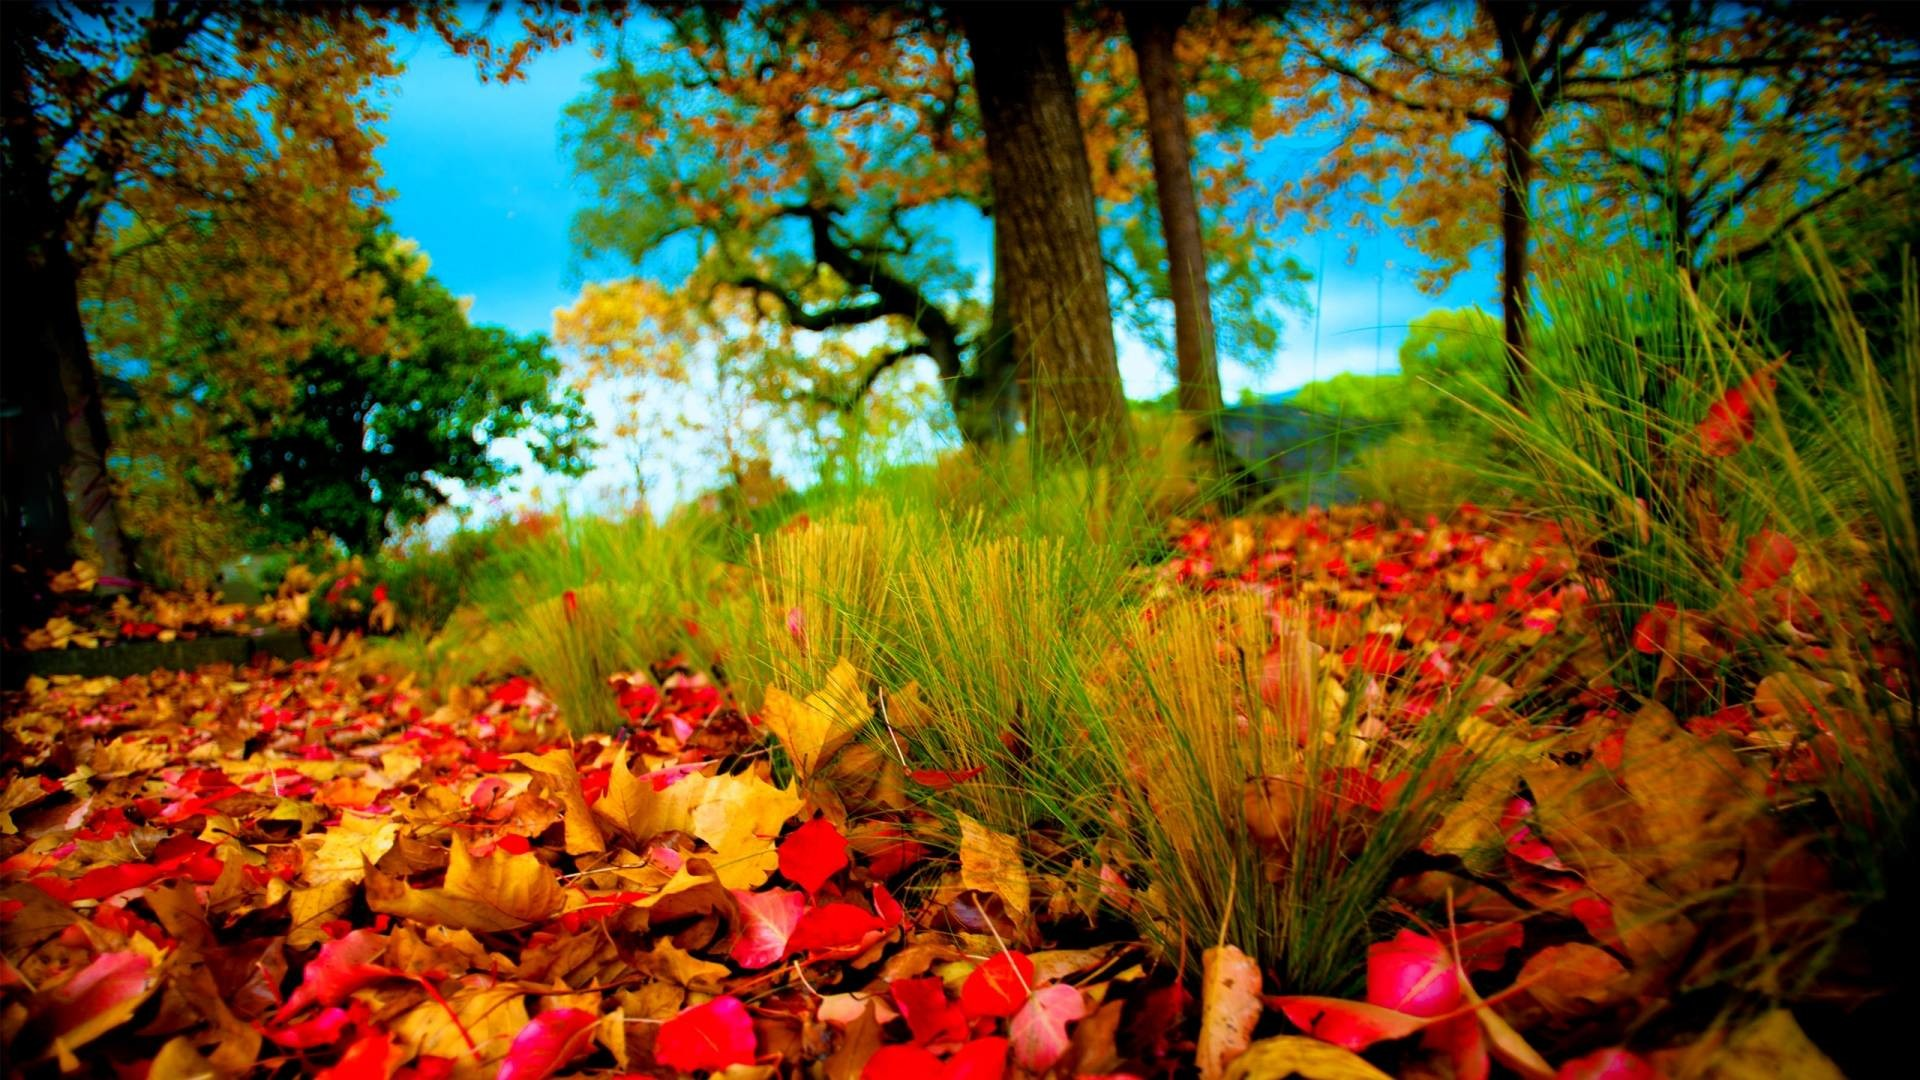 HD Wallpapers 1080p Nature 3D